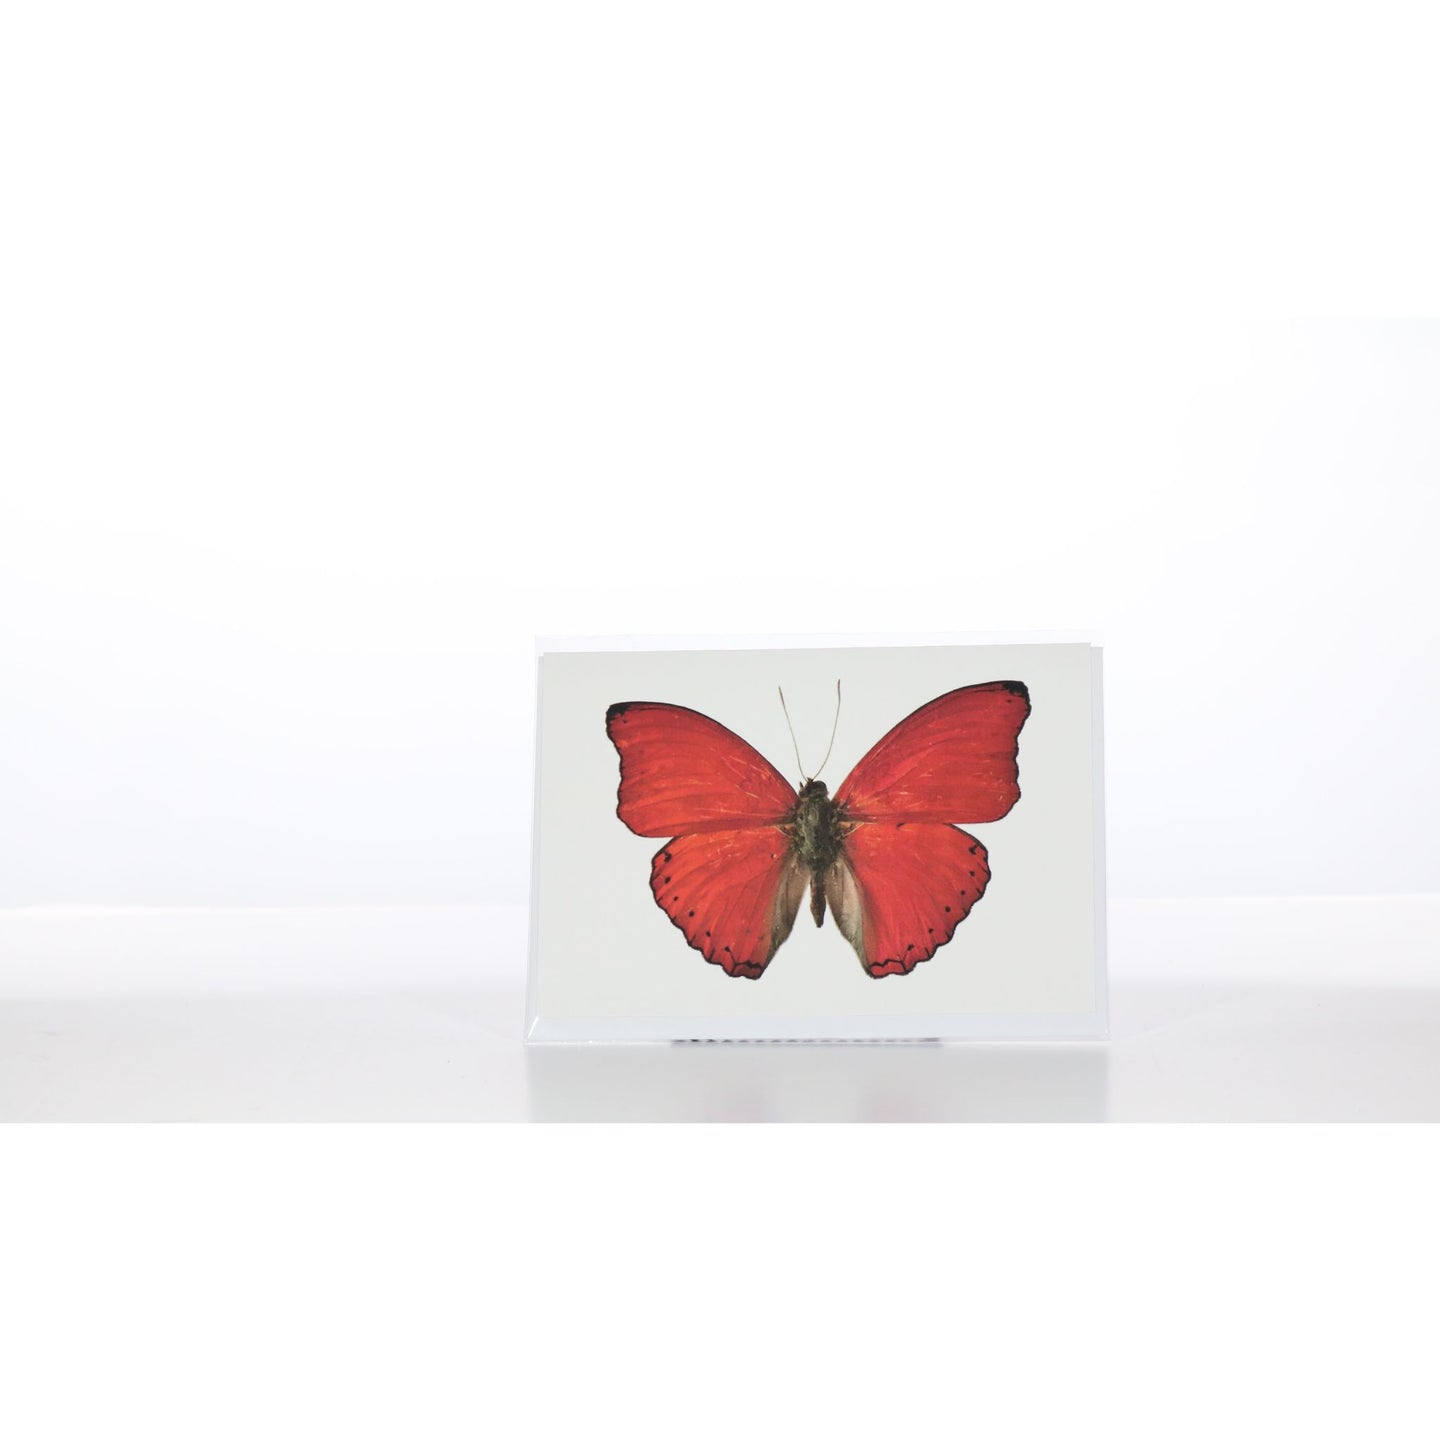 Greeting Card GC16 - Insecta Etcetera